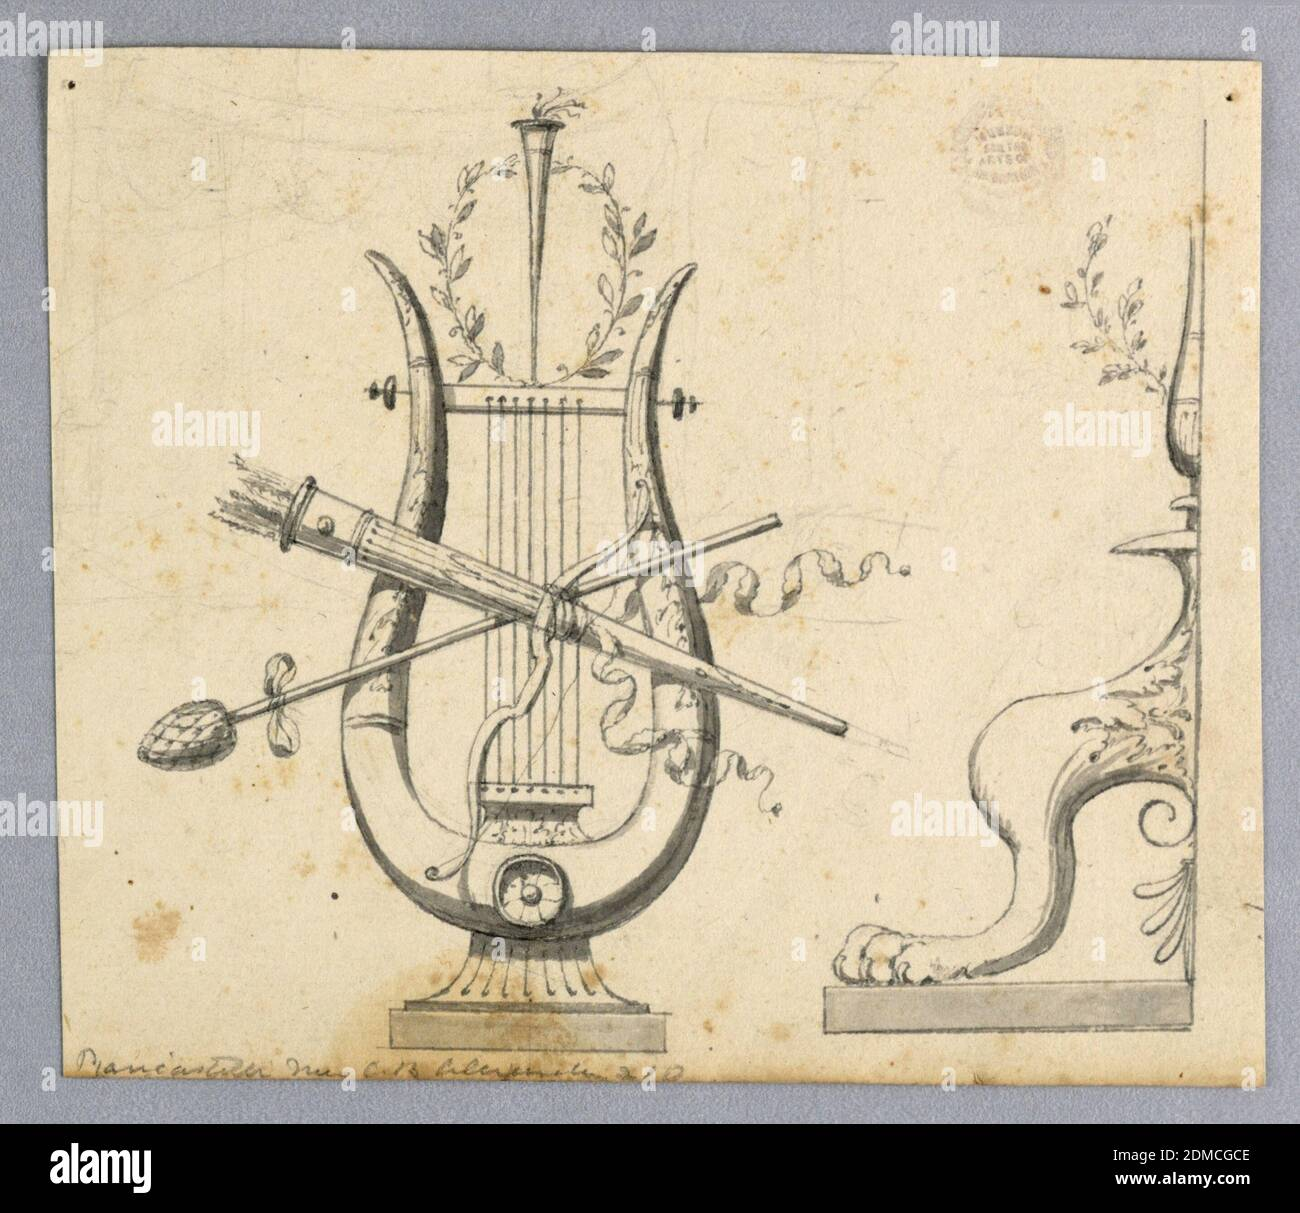 Design for Decorative Motifs, Graphite, pen and ink, brush and wash on paper, At left, a lyre with a bow, a thyrsus, a quiver in front of it, with a torch and a wreath on top of it. At right is the left half of the foot of a candelabrum., Italy, 1820–1830, ornament, Drawing Stock Photo